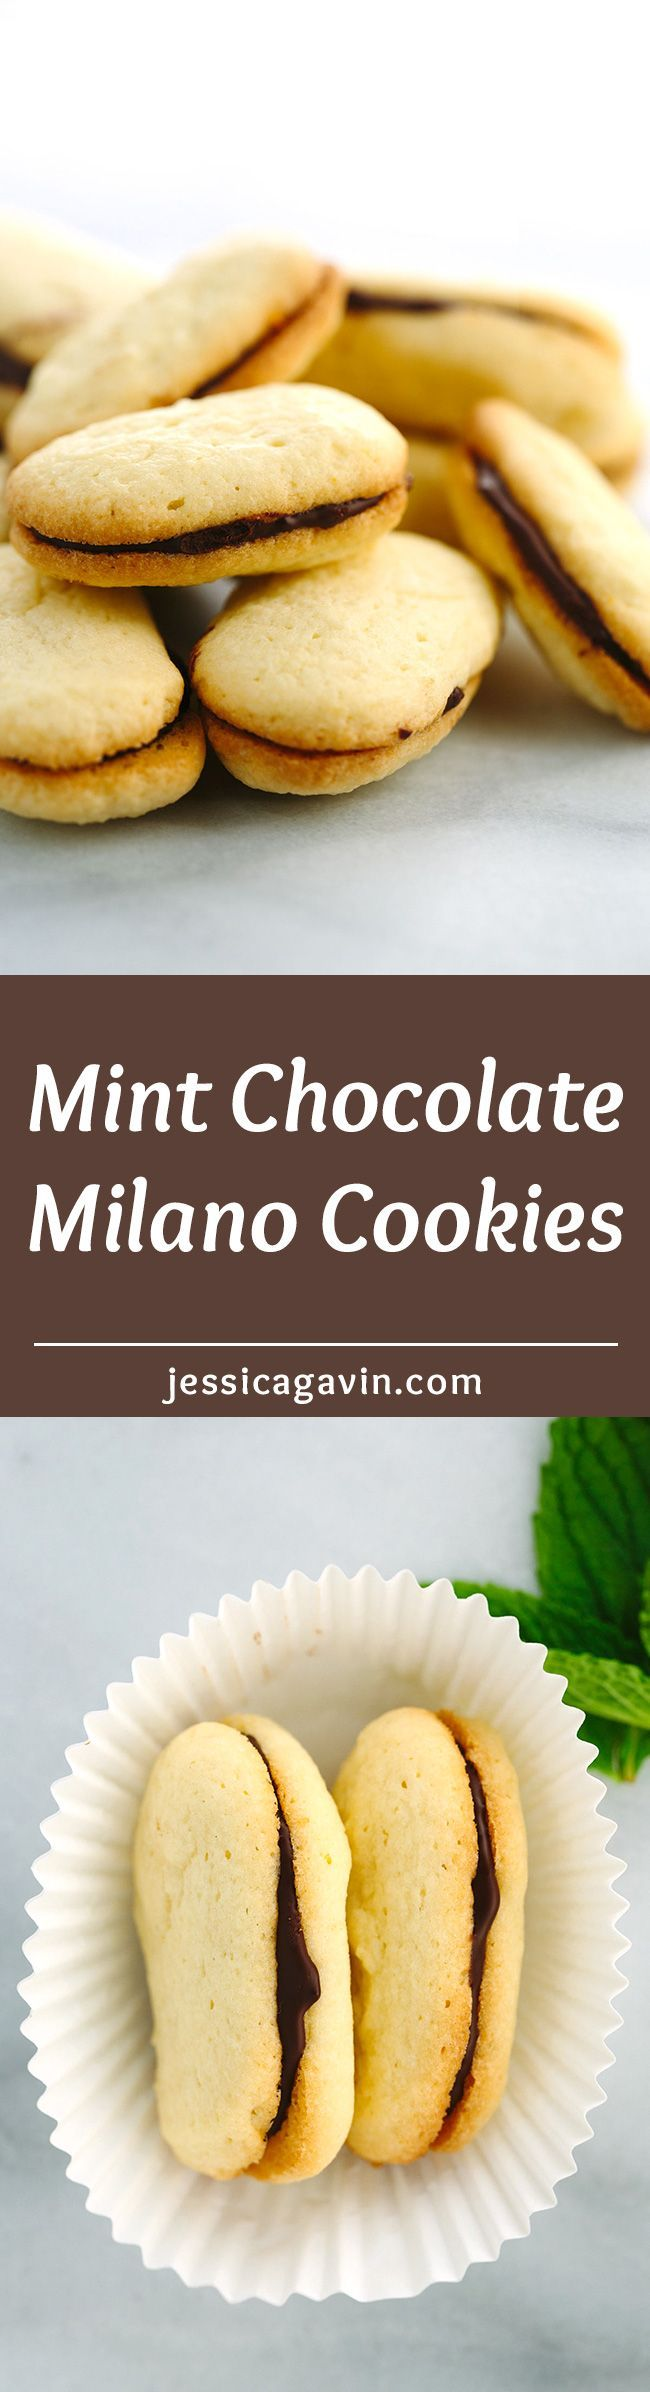 Homemade Mint Chocolate Milano Cookies - These little sweet sandwiches ...